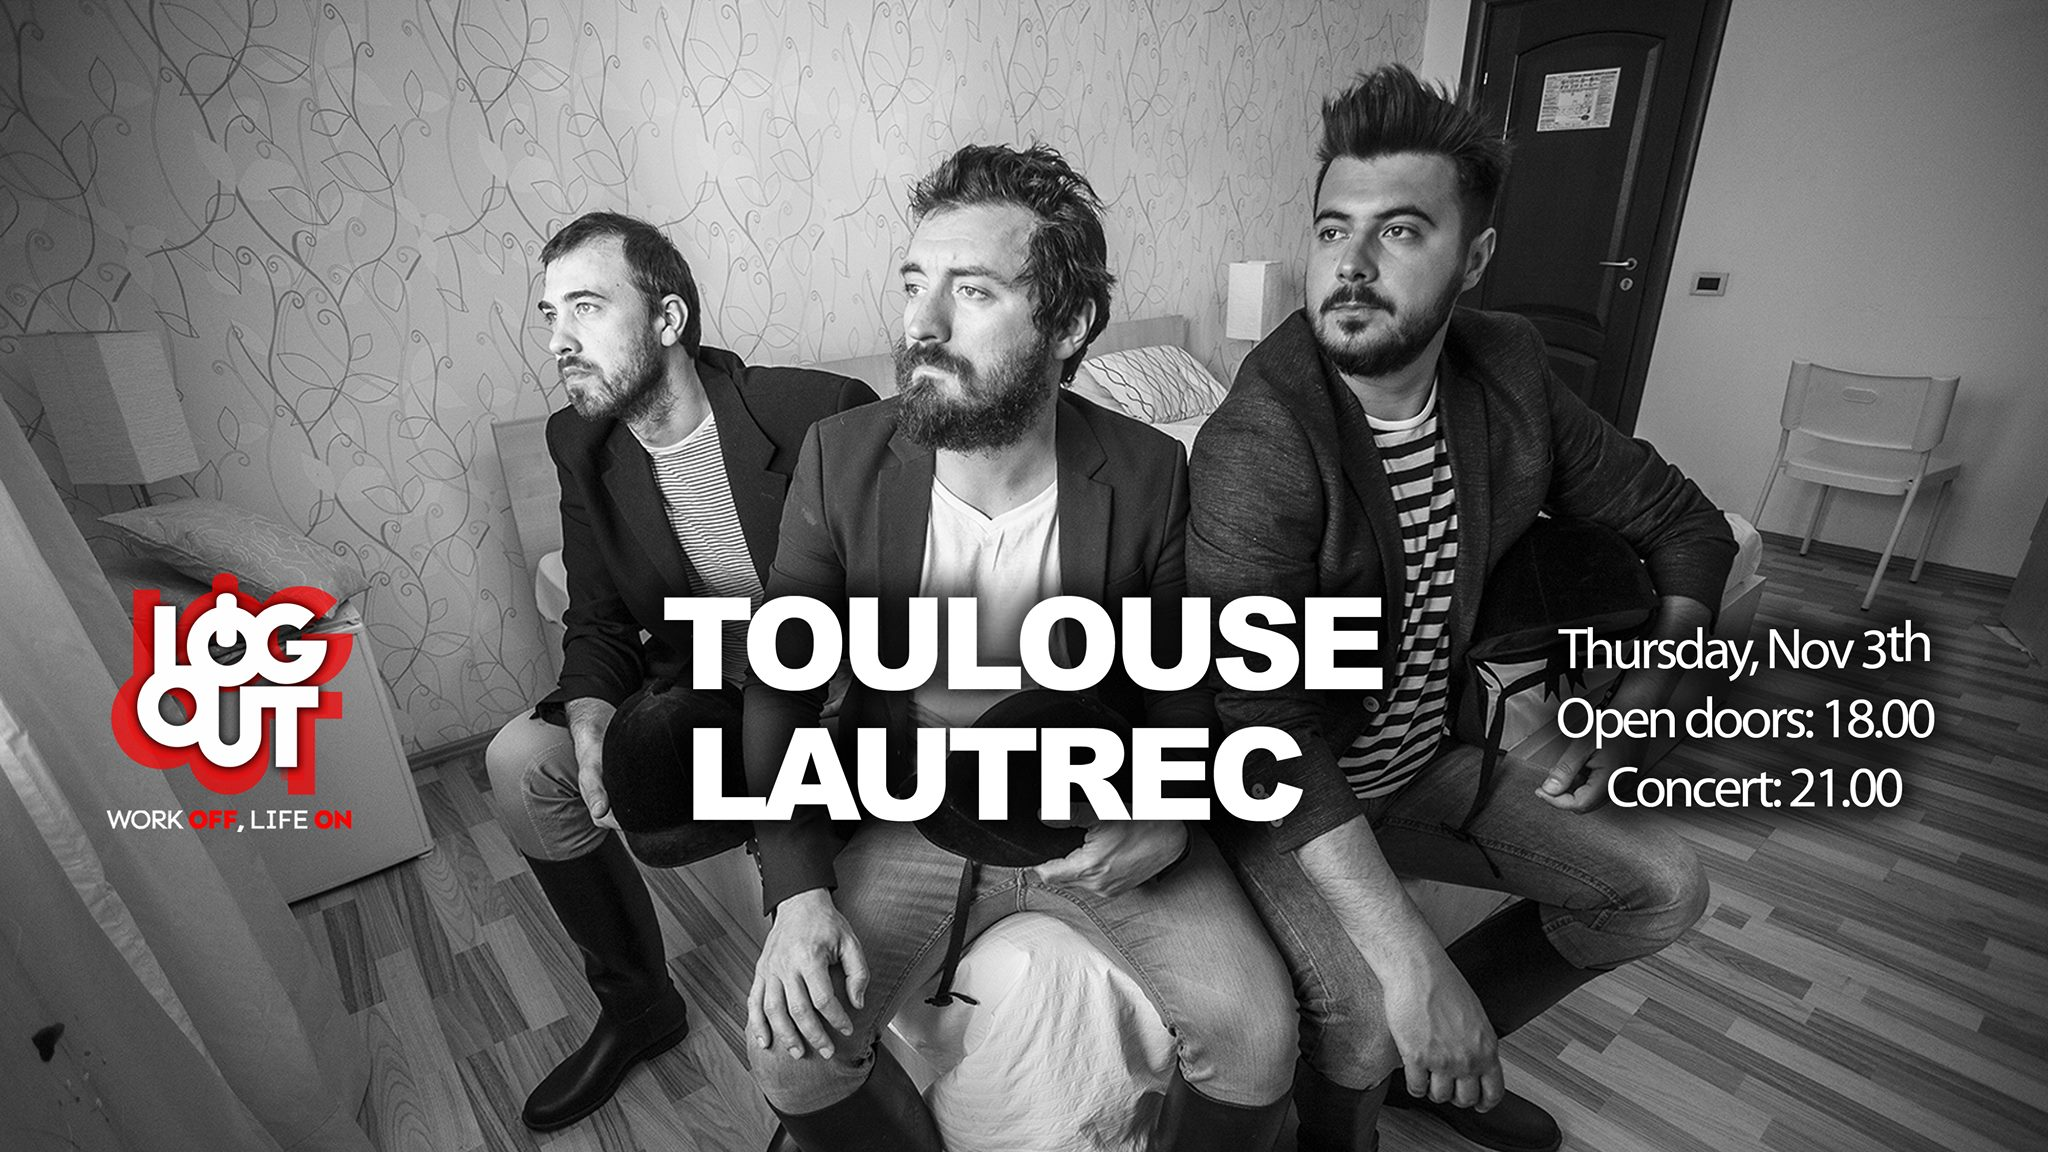 Toulouse Lautrec @ Euphoria Music Hall